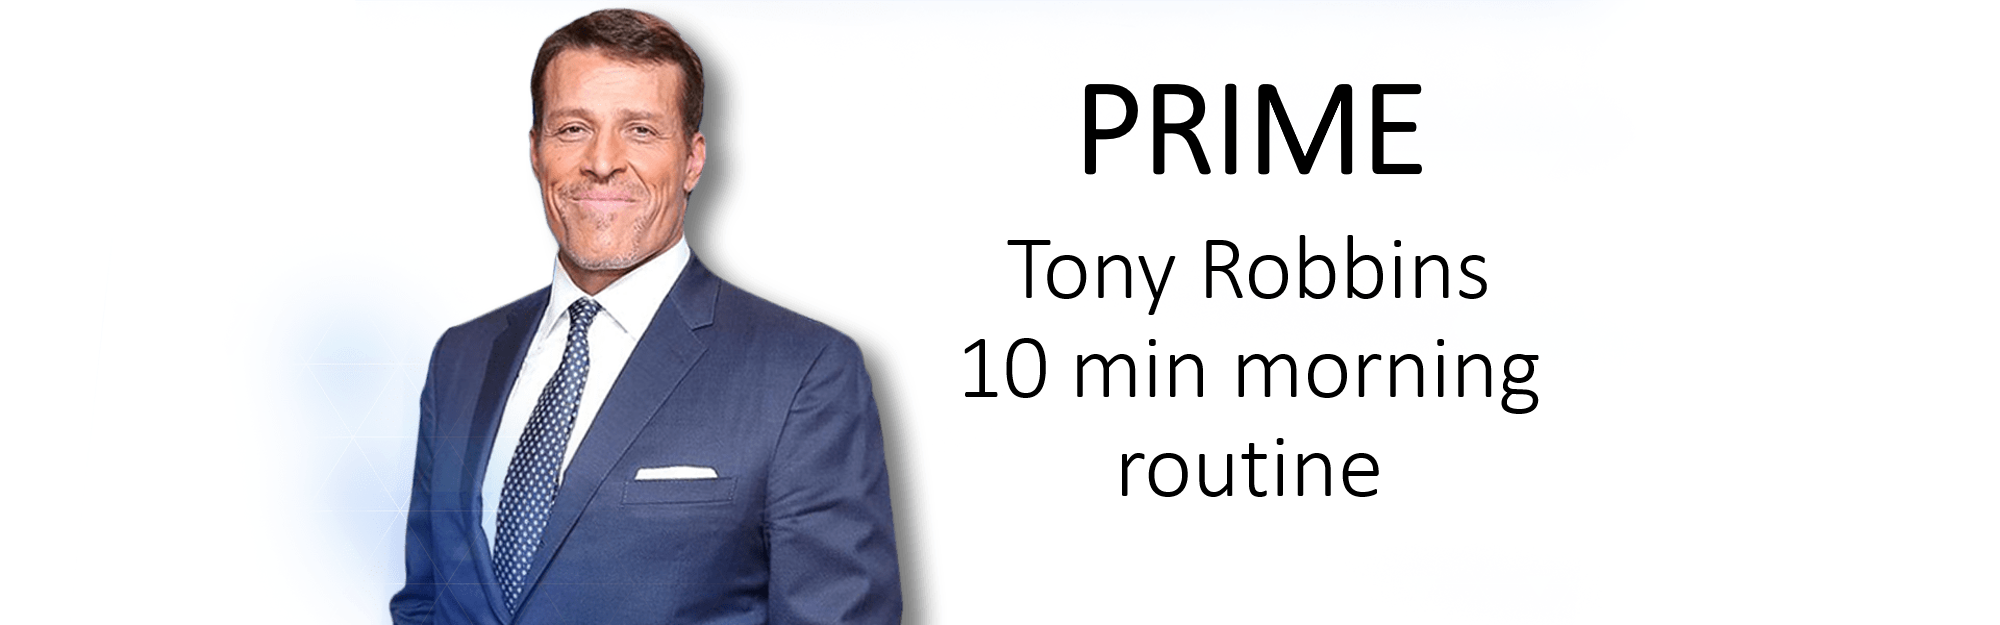 KEY TAKEAWAY FROM UPW WITH TONY ROBBINS – PRIME Yourself!